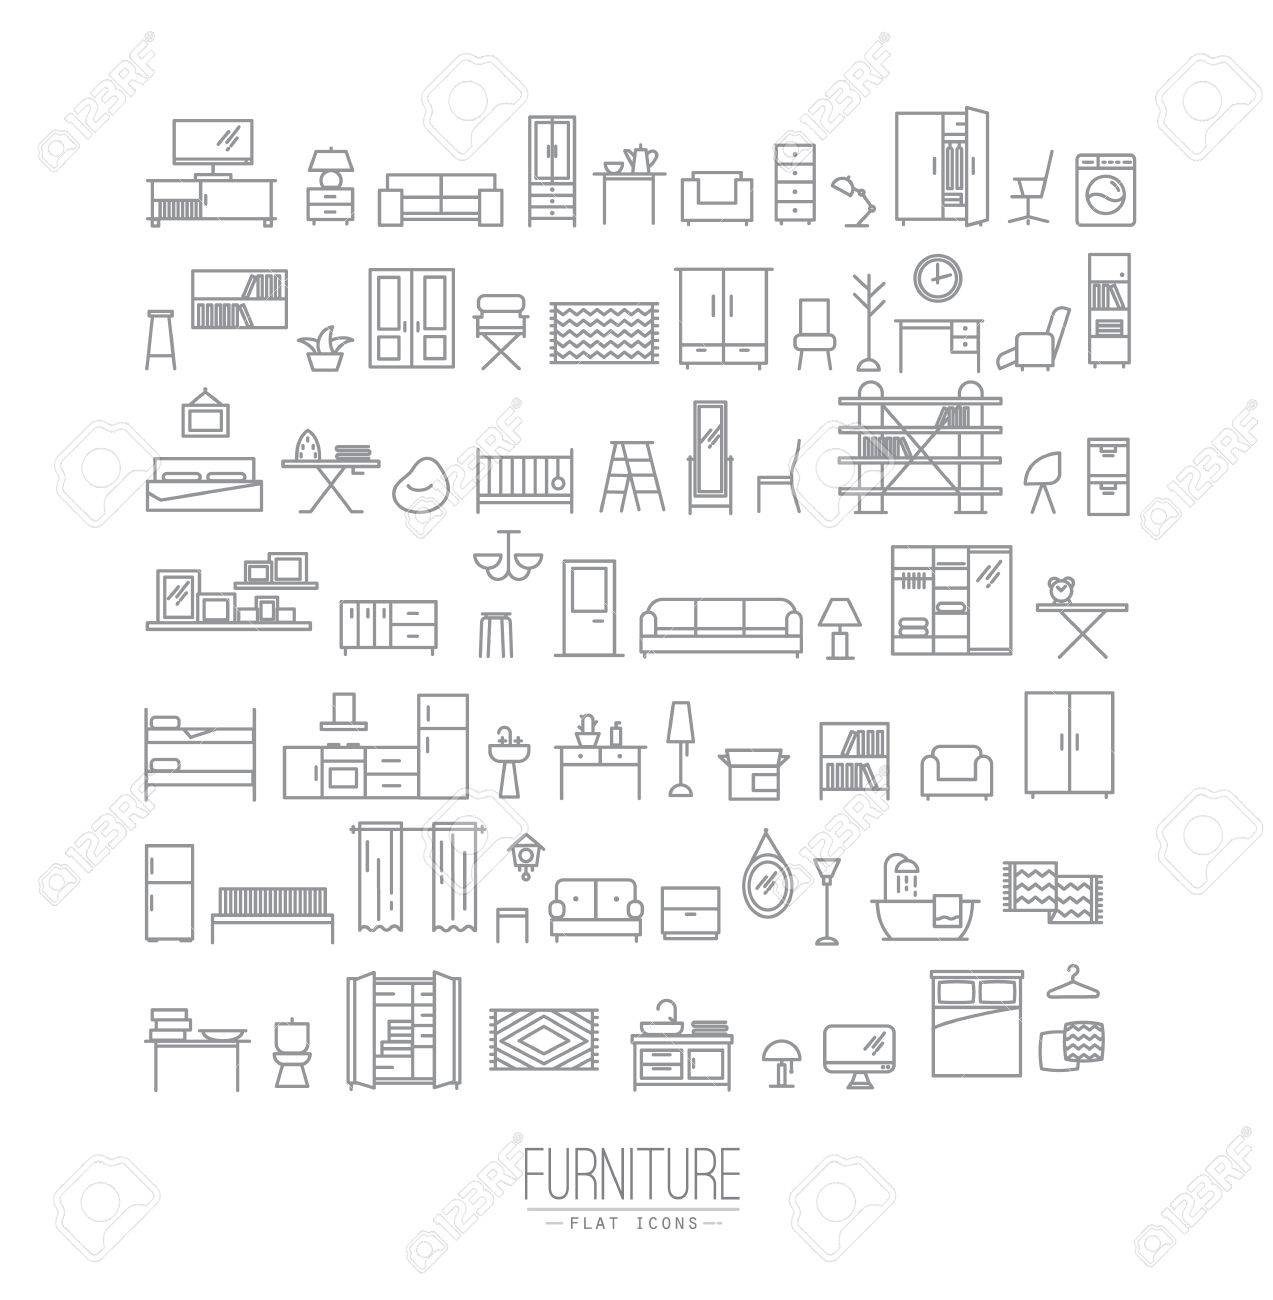 Furniture and home decor icon set in modern flat style drawing with grey lines on white background - 59360607